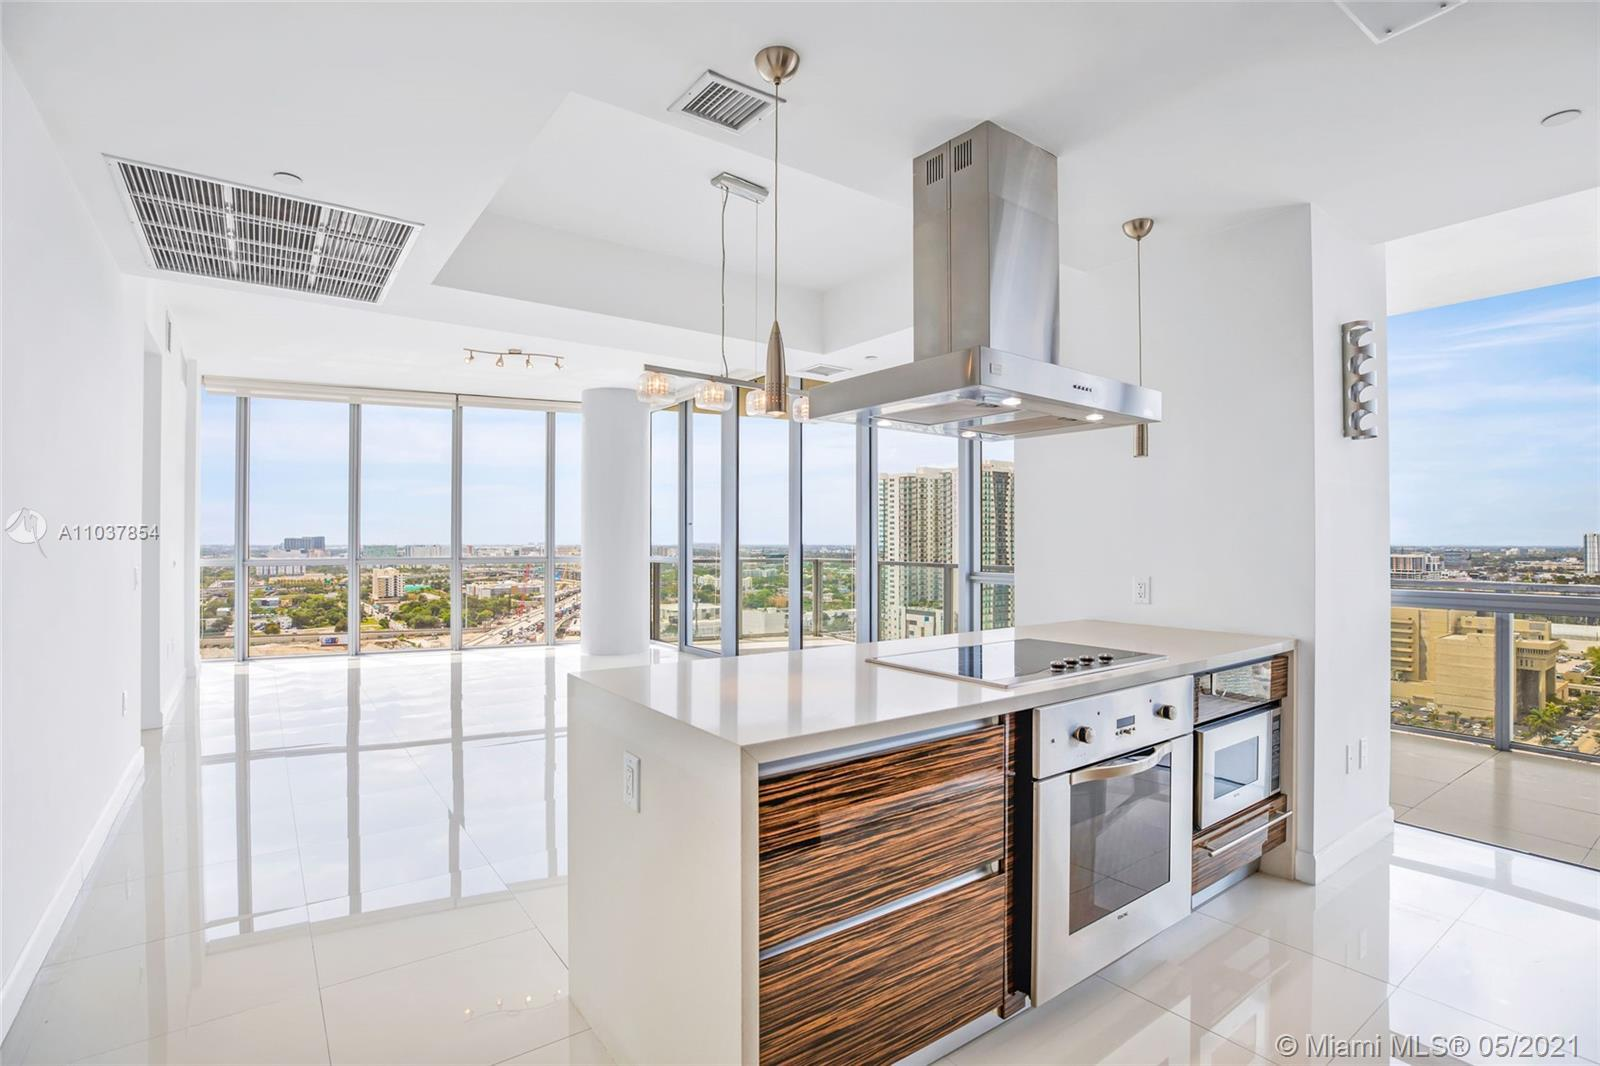 GREAT OPPORTUNITY!!! This is a beautiful corner unit with a lot light coming in at one of the most p